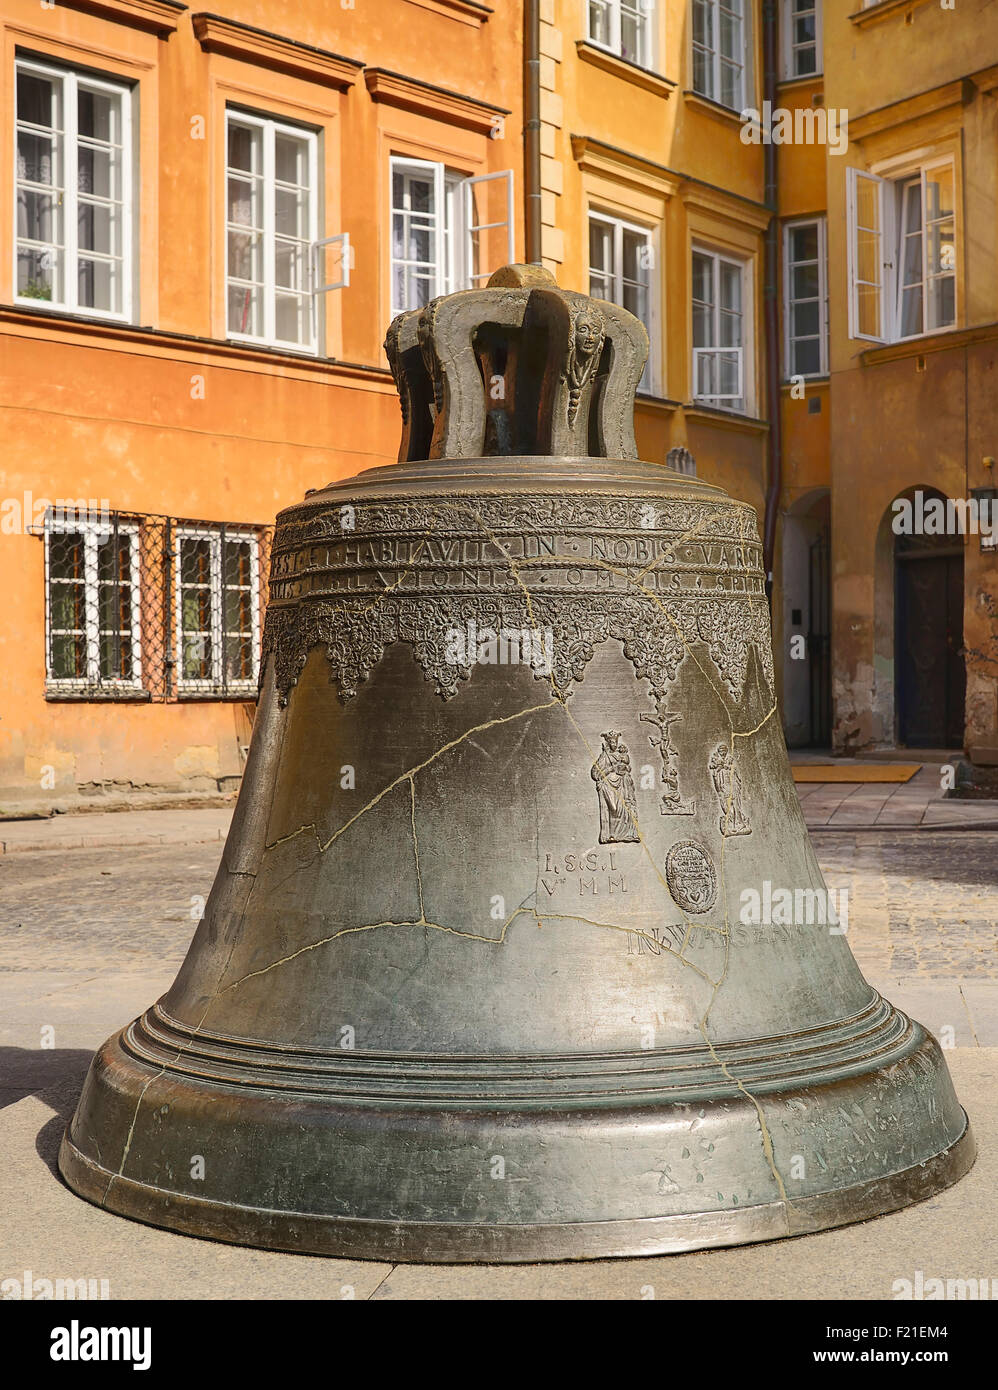 Poland, Warsaw, Old Town, Canon Square, Bronze bell of Warsaw. - Stock Image